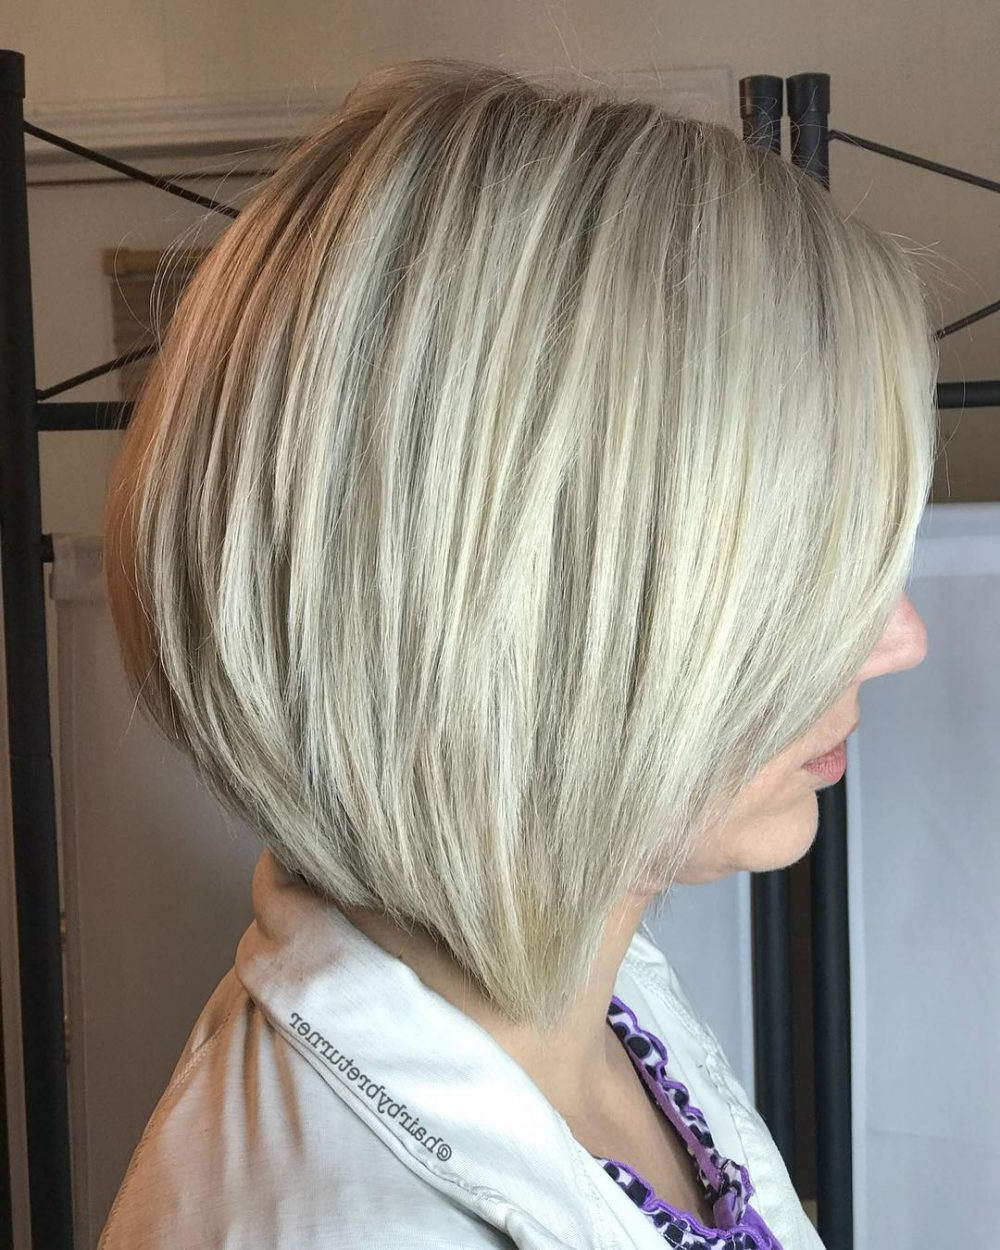 42 Sexiest Short Hairstyles For Women Over 40 In 2019 Within Chic Short Bob Haircuts With Bangs (View 13 of 20)